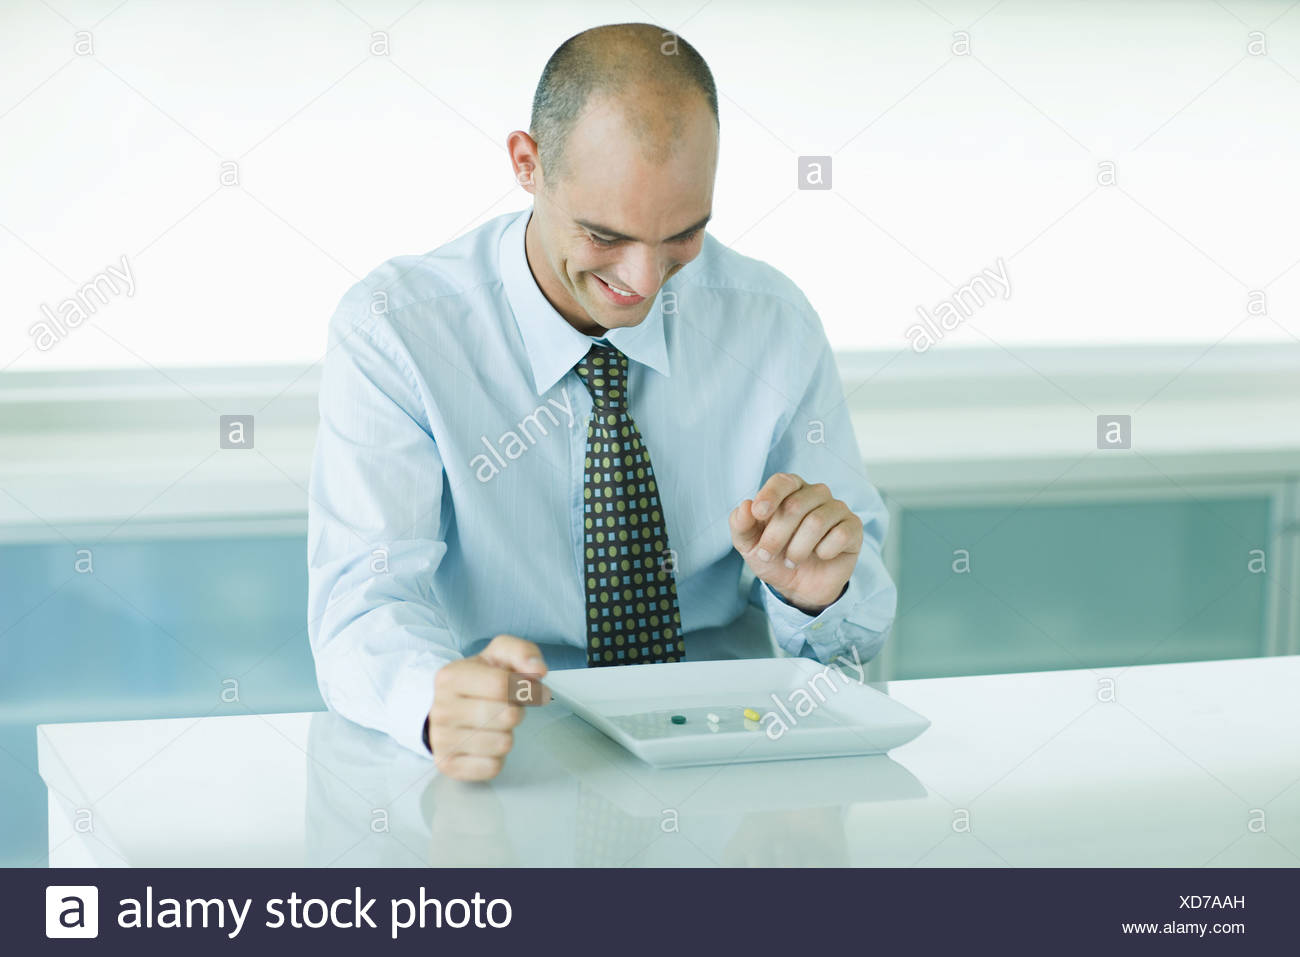 Man sitting in front of plate containing vitamins - Stock Image